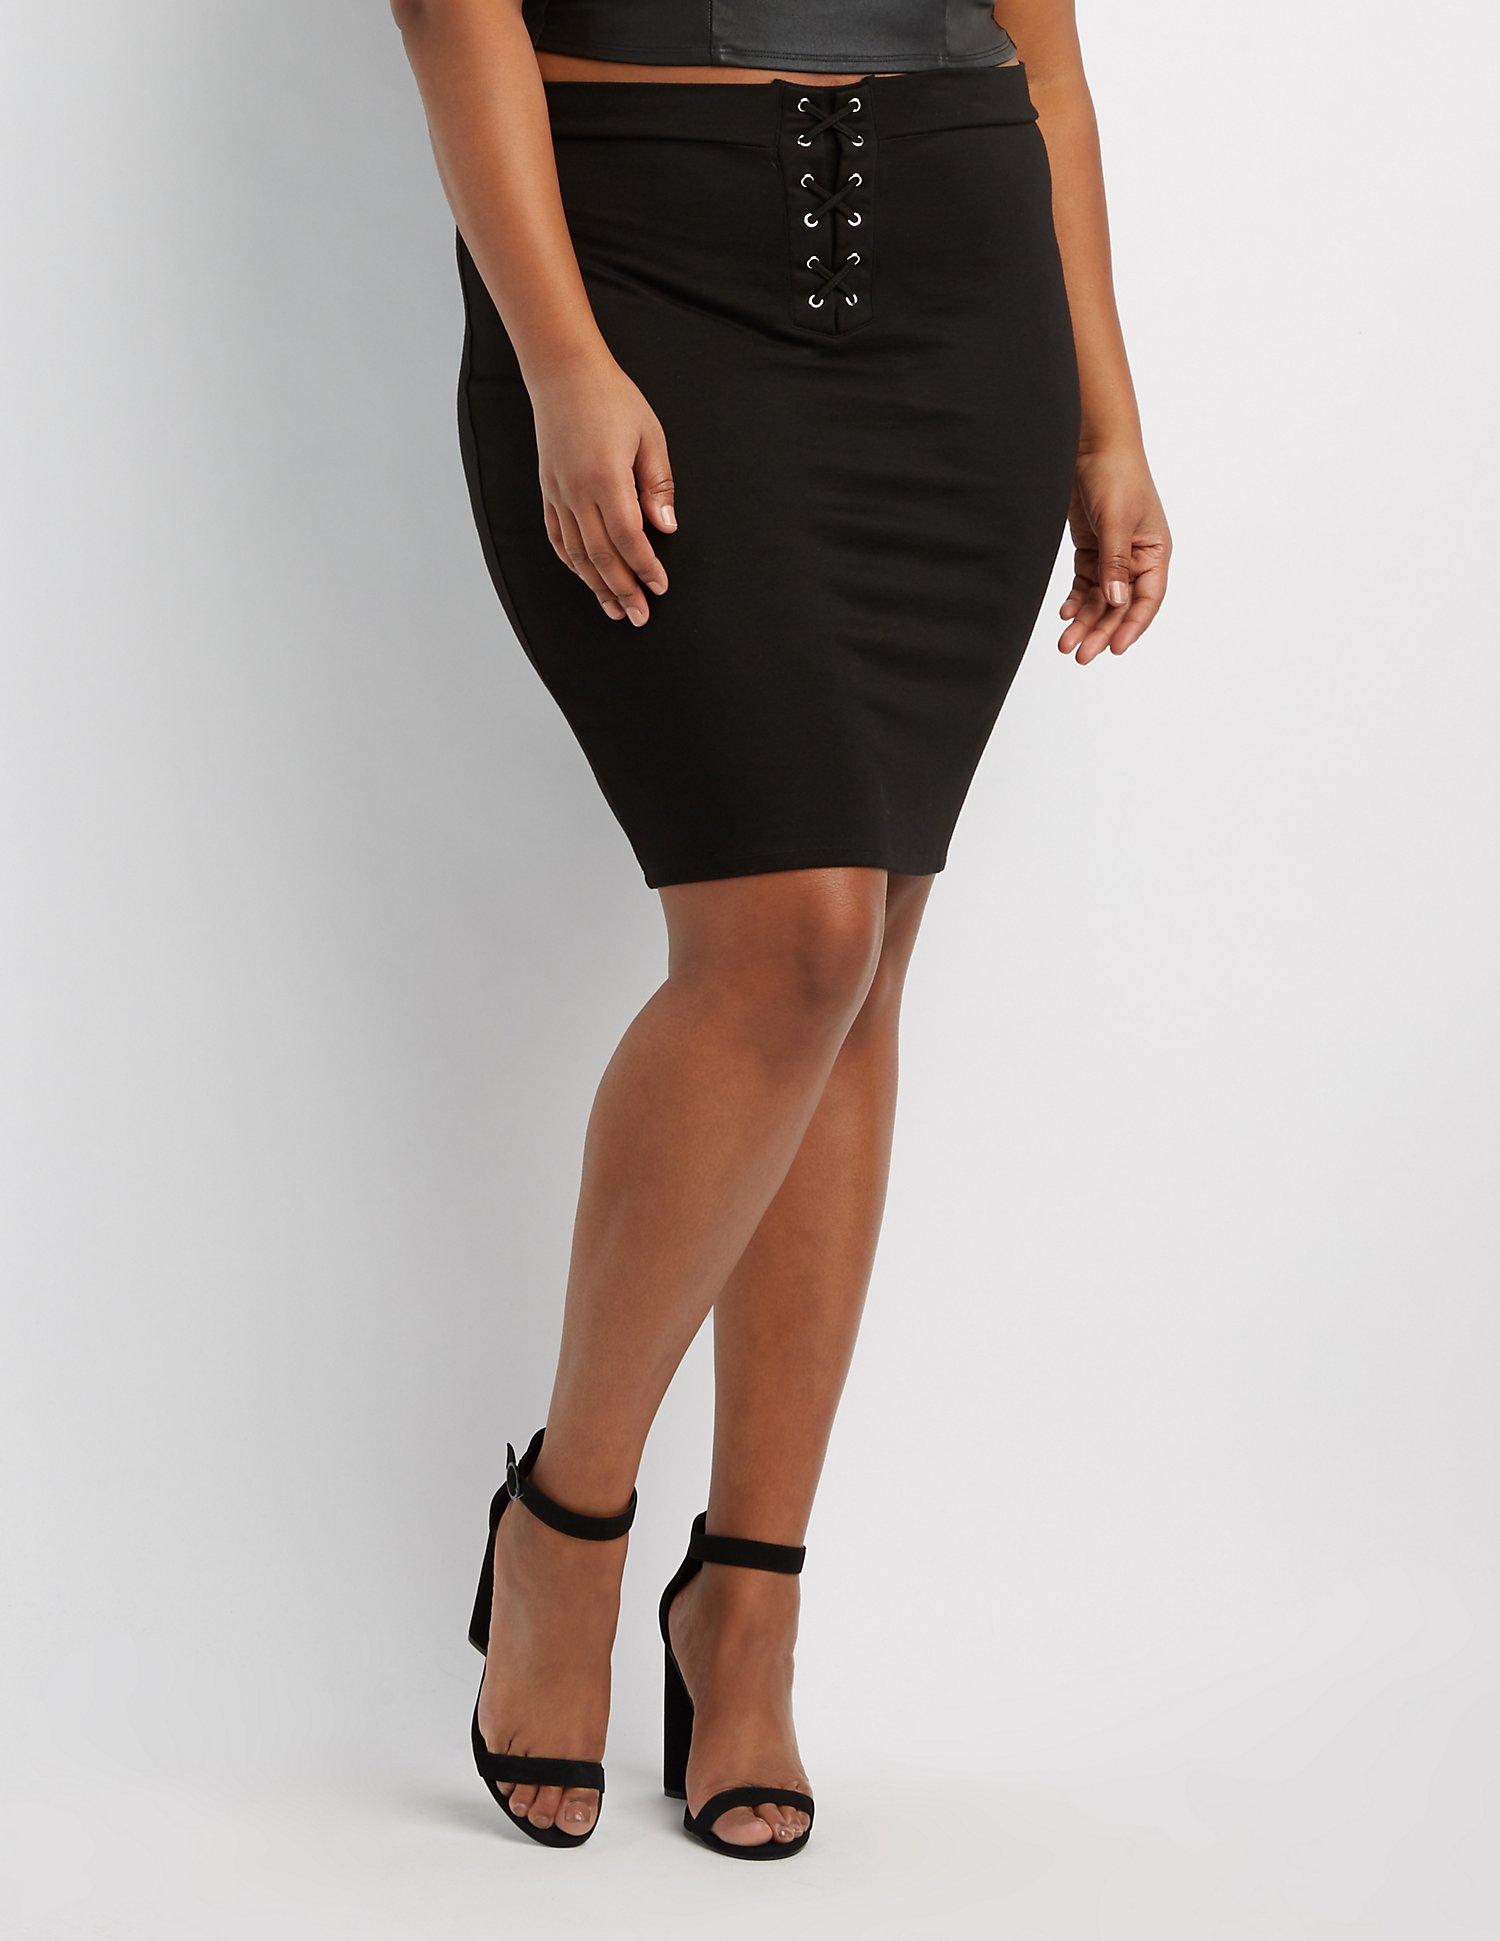 c2b73ac59a6 Lyst - Charlotte Russe Plus Size Lace-up Detail Pencil Skirt in Black